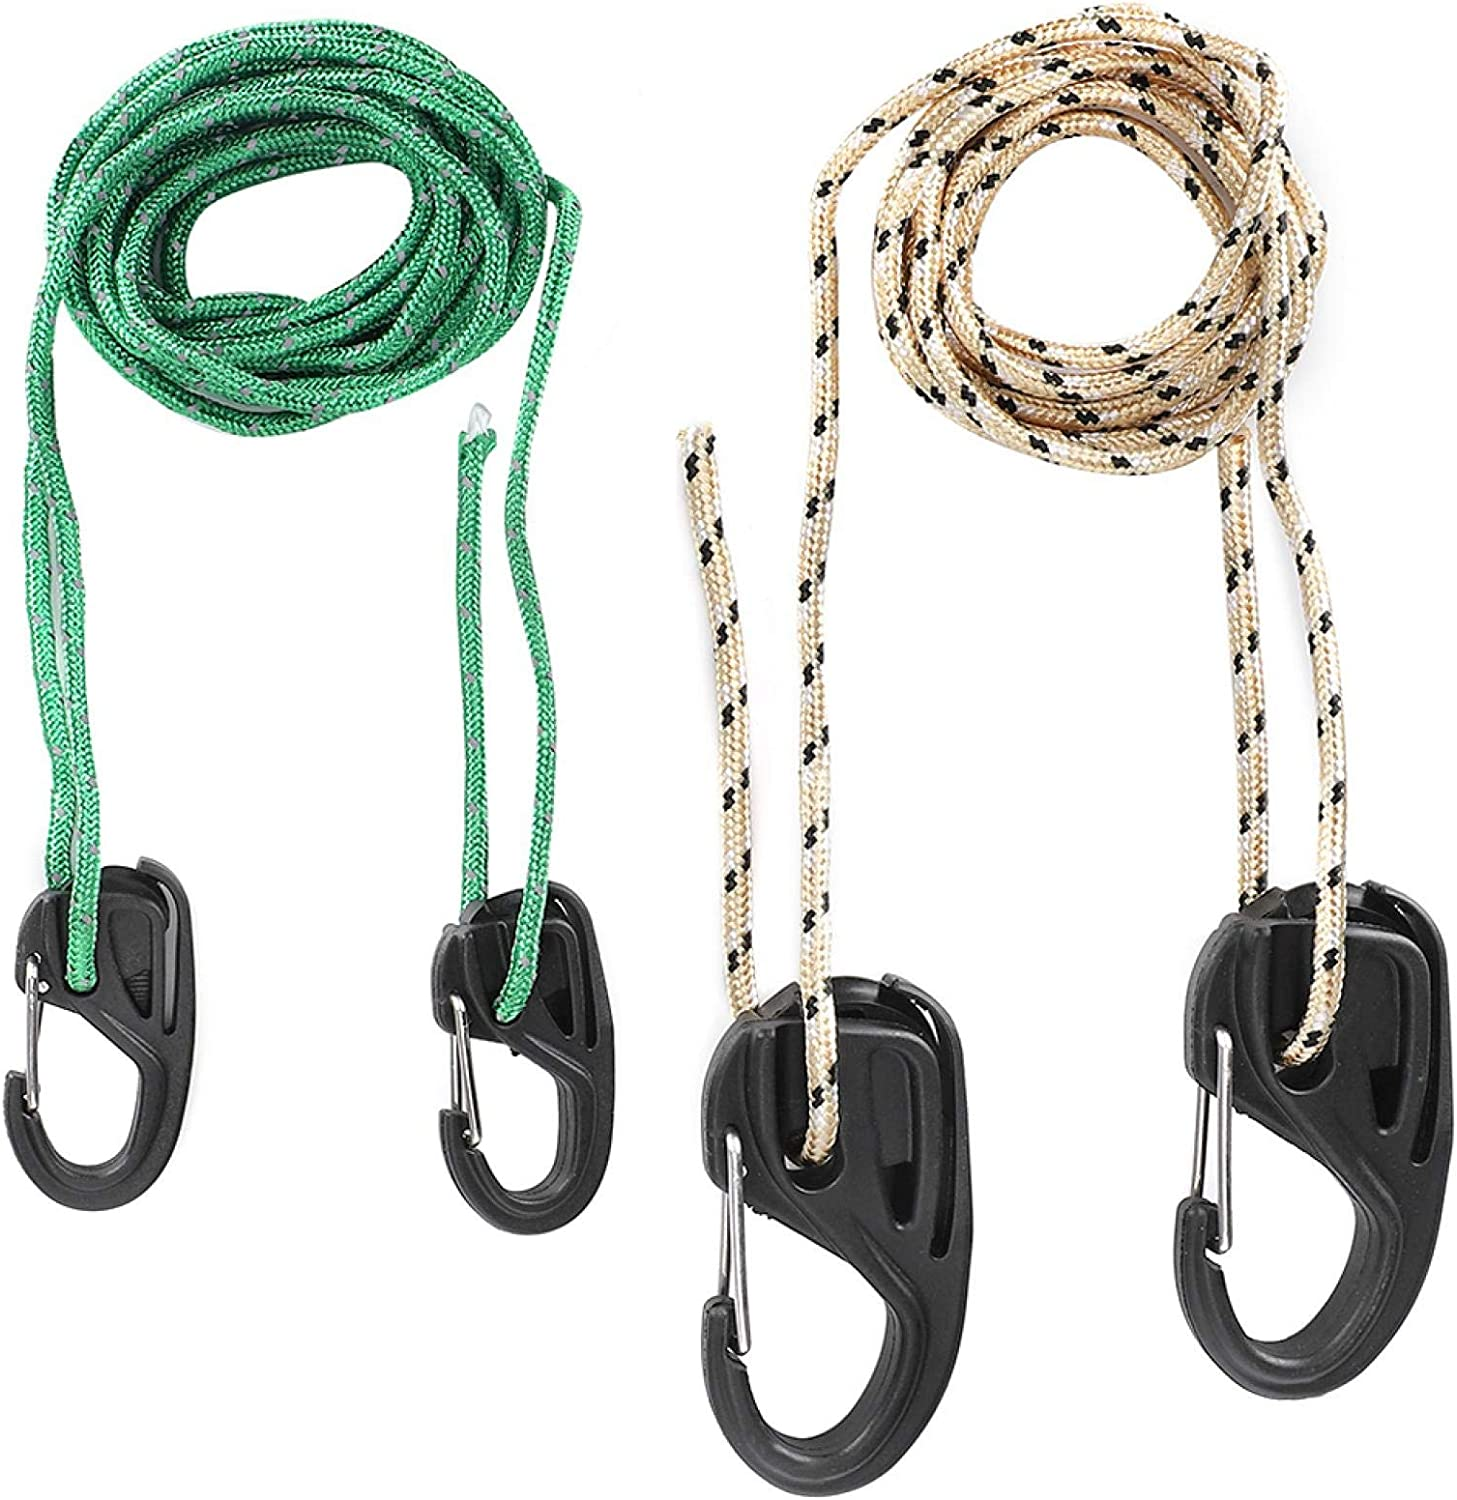 Jeanoko Lanyard Hook Lockable Designed Tent Lanyard Hook Cord Tight for Hanging Tents for Planting Lights for Outdoor Activity Fans Carabiners